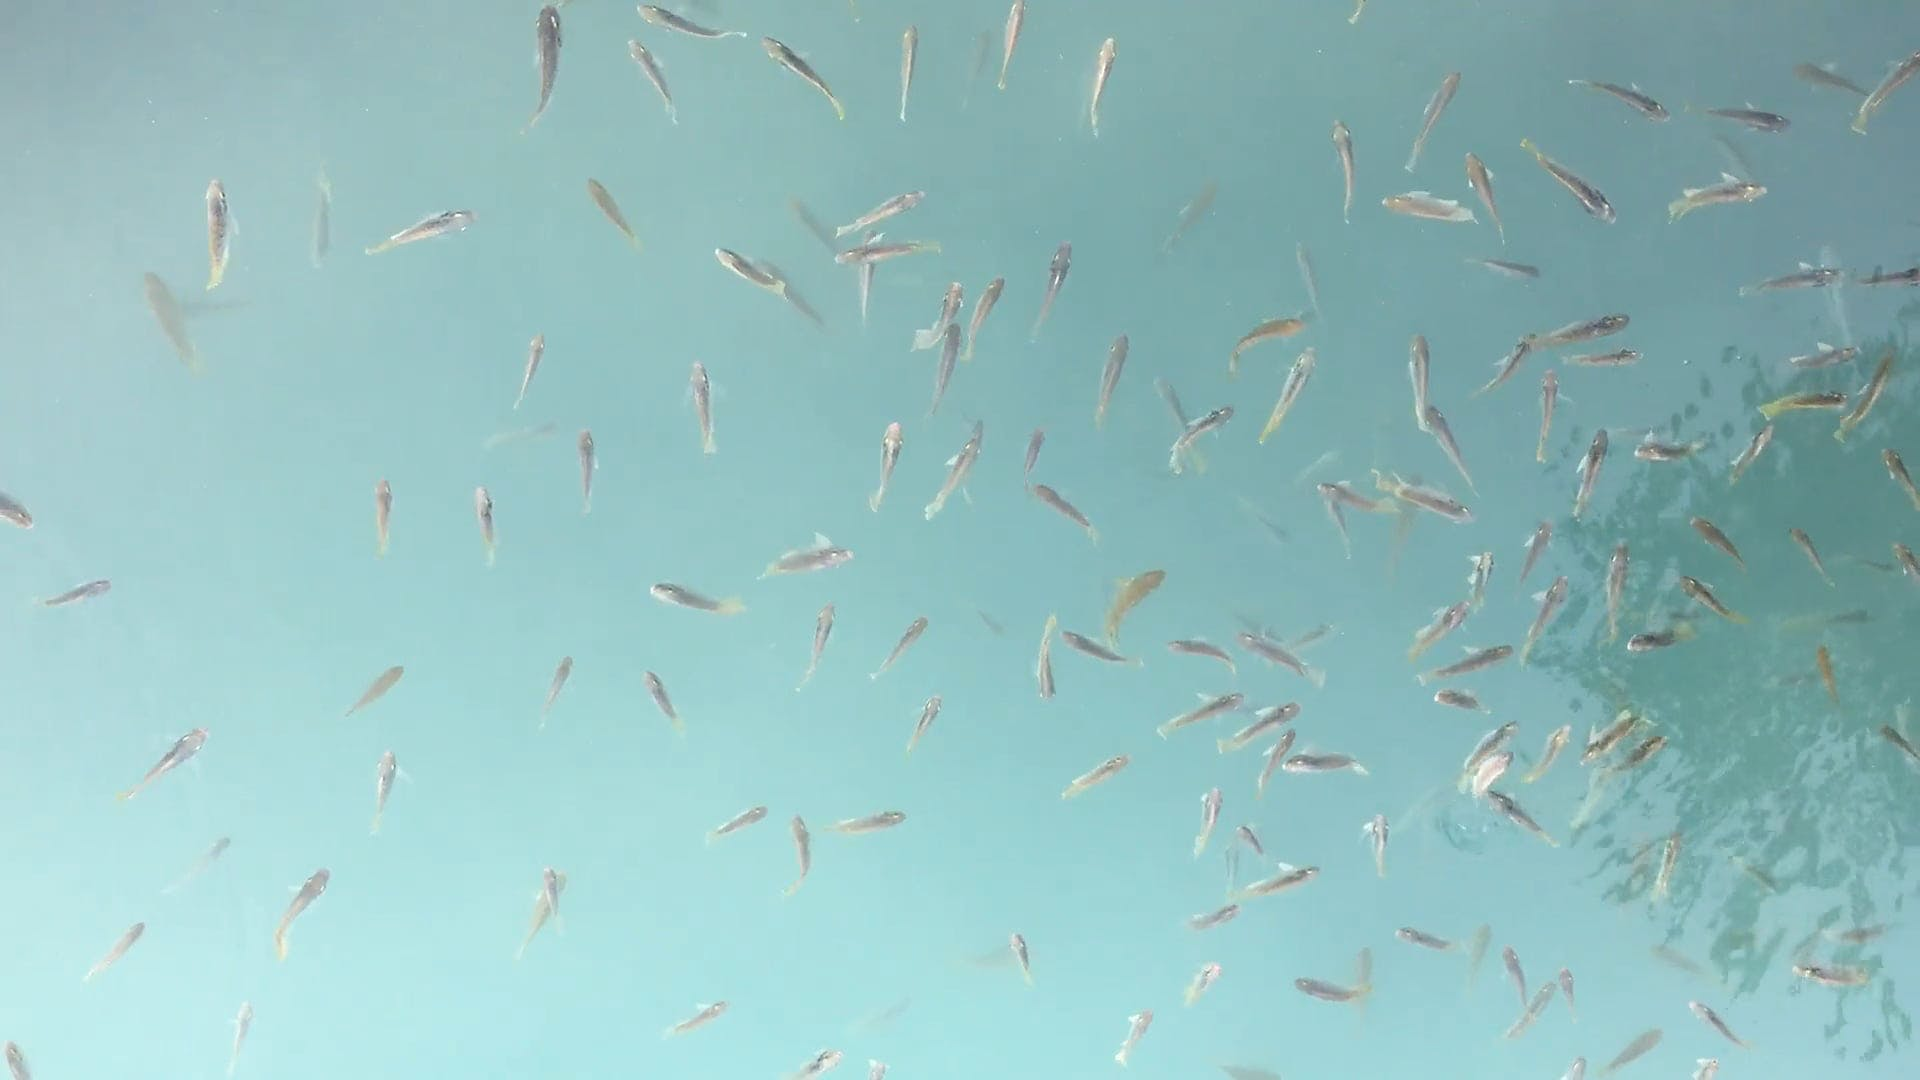 Video Of School Of Fish